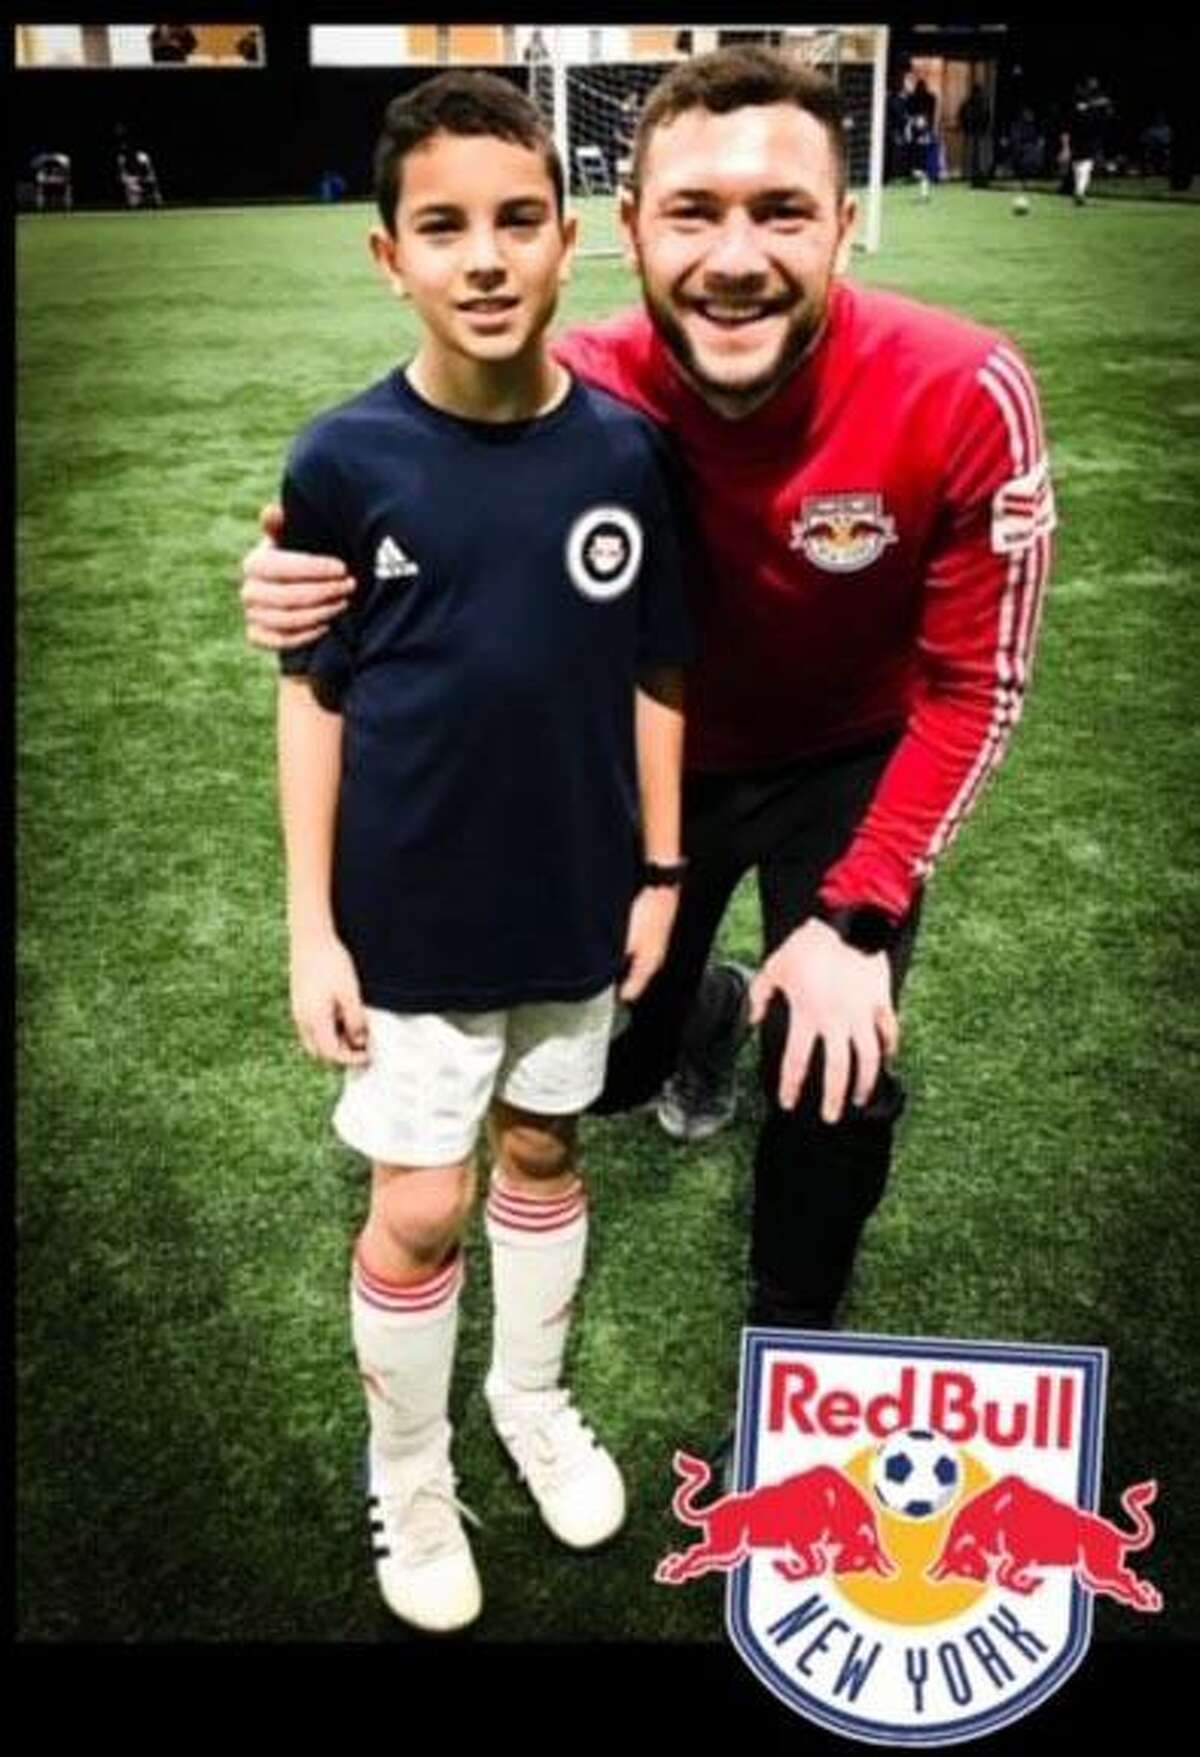 New Milford resident Matheus Schmidt has been selected as one of the top 2008 birth-year prospects in the Red Bull New York - Soccer, and has earned an invitation to try out for the RDS Winter Showcase Teams. The try-out is by invitation only, based on recommendations by RDS coaches, and participation is reserved for around our top 1 percent of players. They invite around 60 to 80 players in each age group. More than 6,000 individuals participated in the past year.